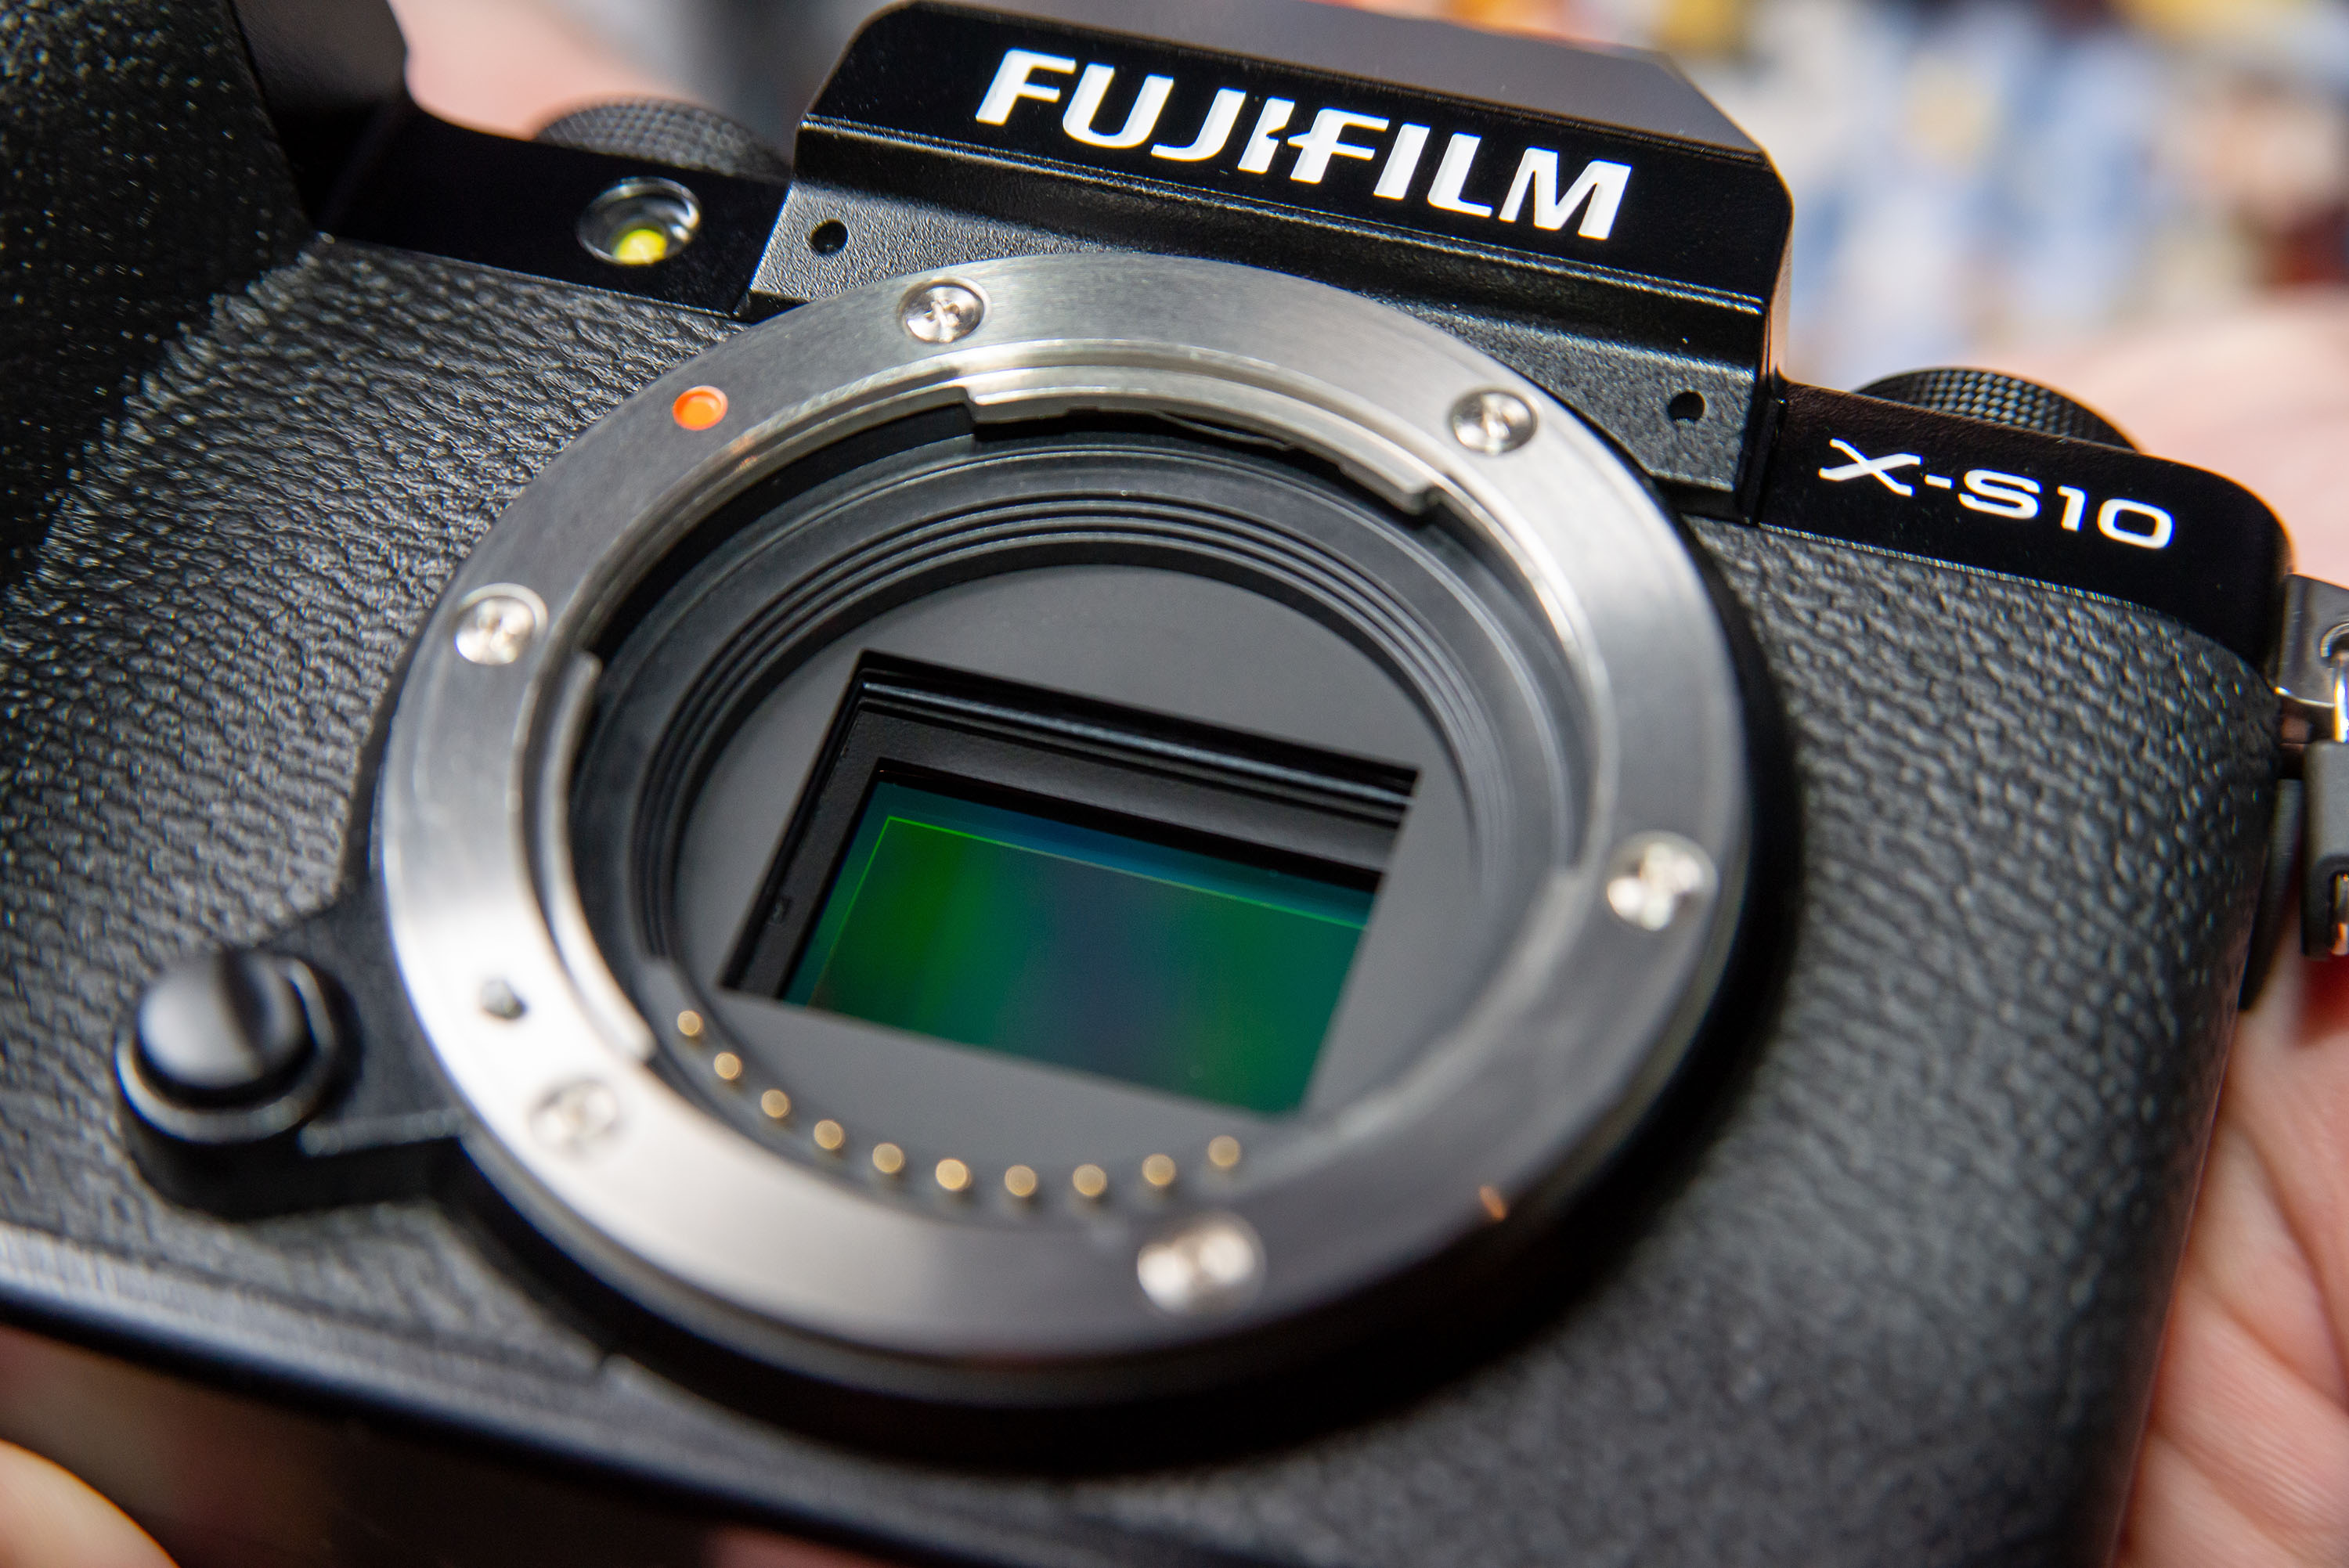 Hands on with the Fujifilm X S10 Small camera, great grip ...